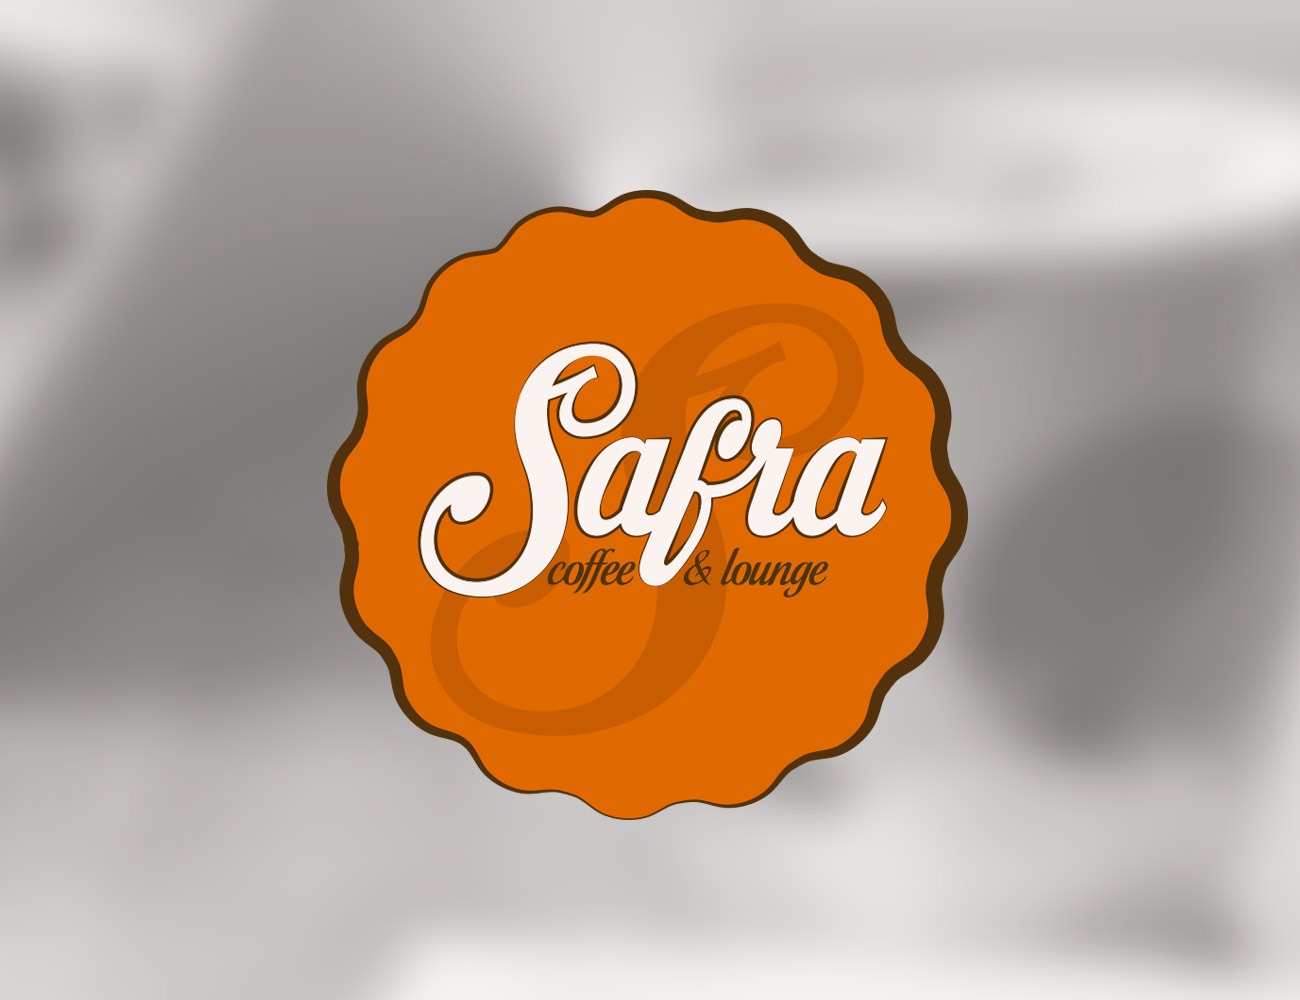 Safra Coffee & Lounge